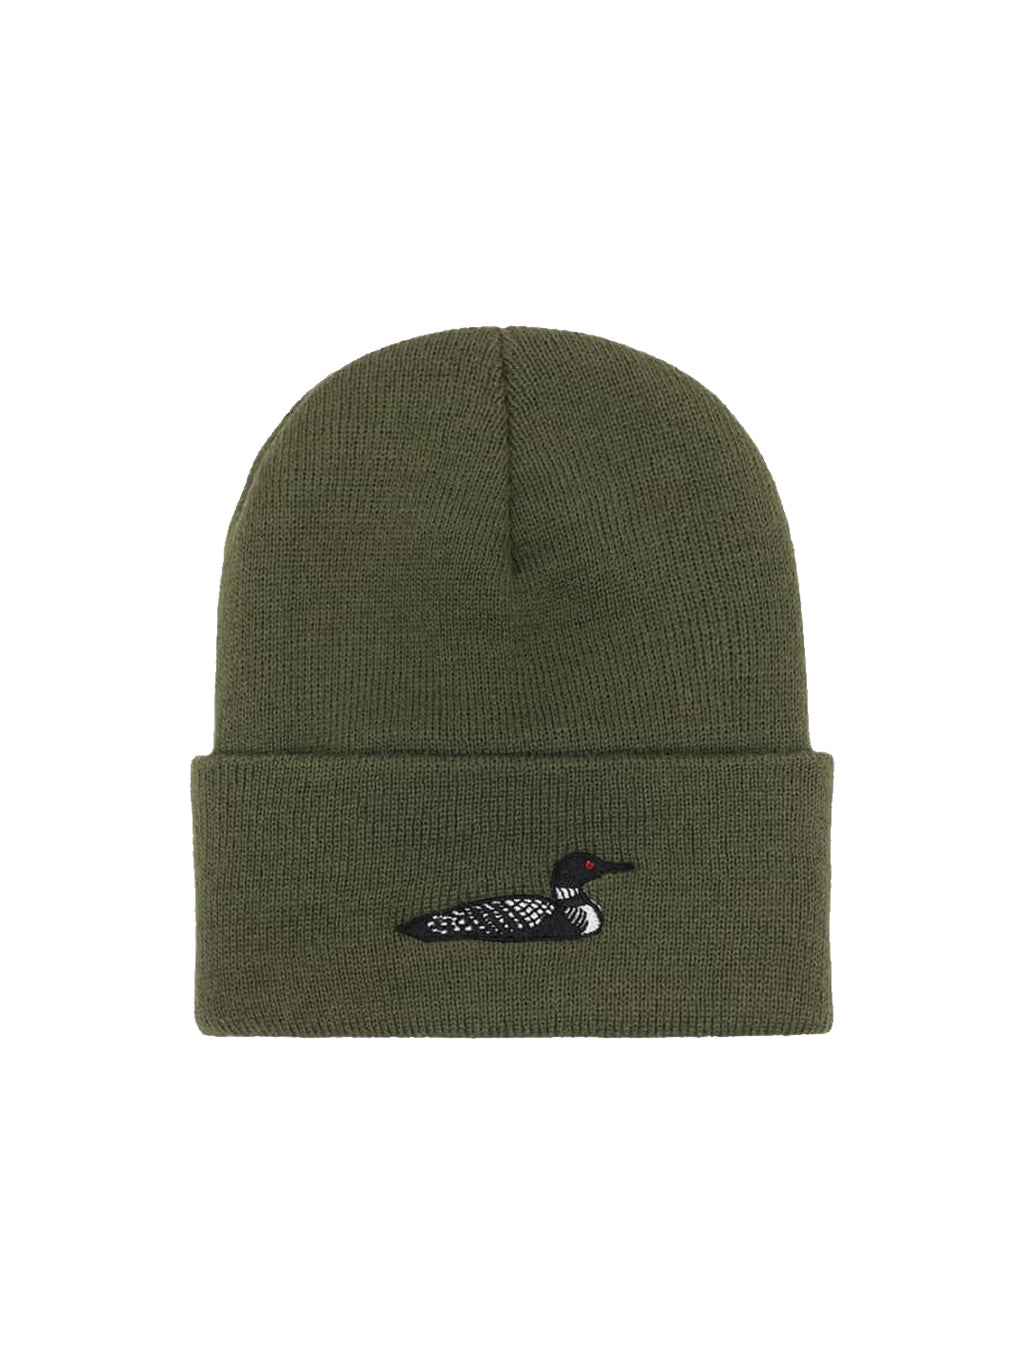 Tan and Forest Loon Beanie